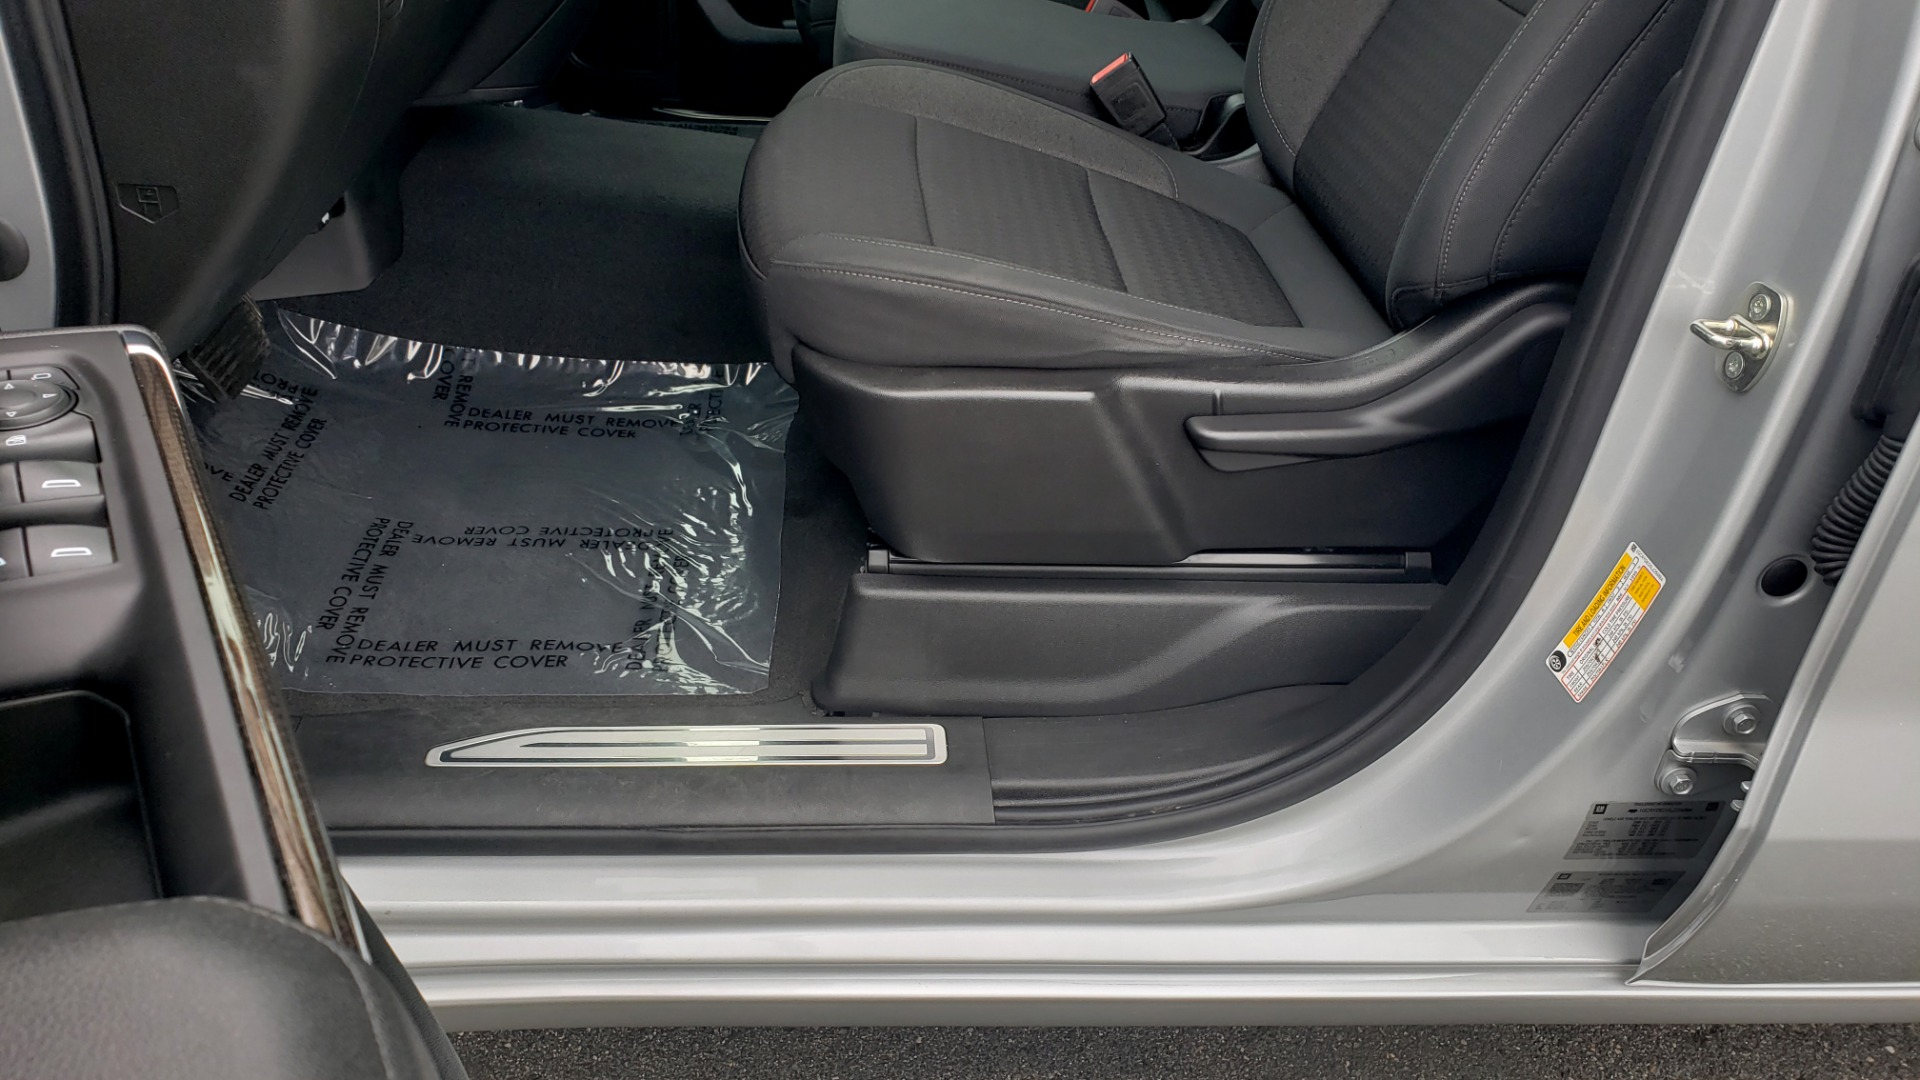 Used 2020 Chevrolet SILVERADO 1500 LT 4WD DOUBLECAB 147 WB / 5.3L V8 / BEDLINER / REARVIEW for sale $41,995 at Formula Imports in Charlotte NC 28227 35